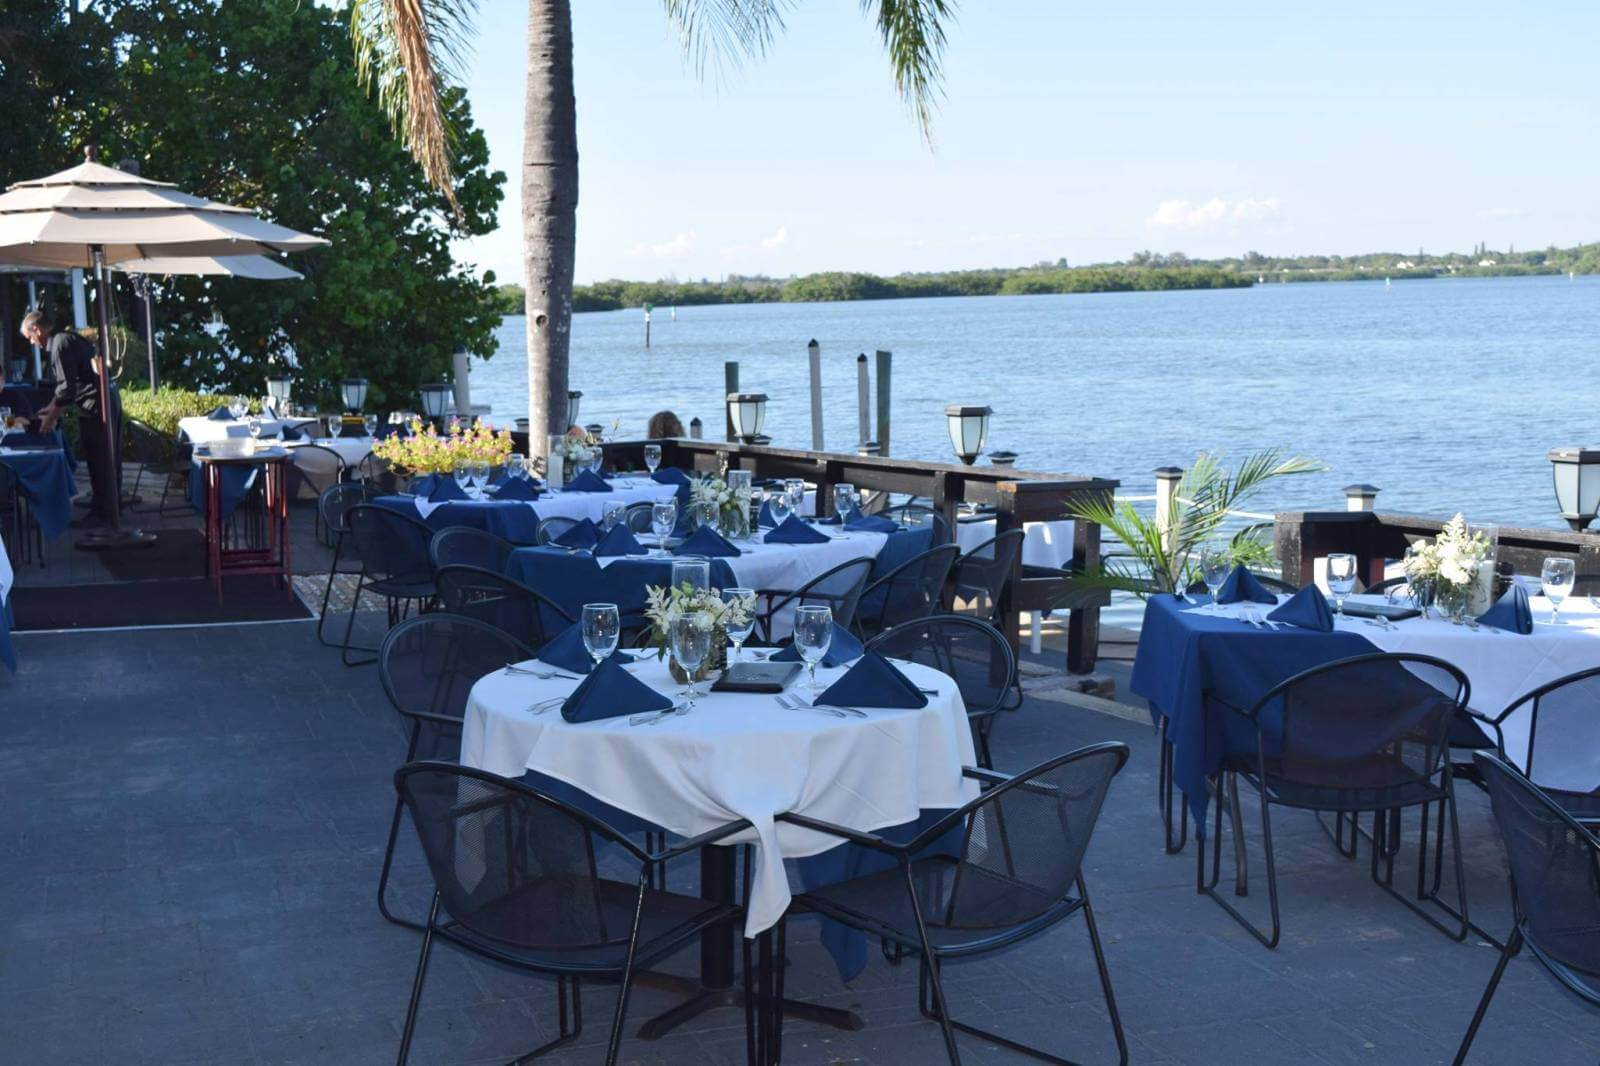 Outdoor patio Ophelia's on the Bay casual fine dining waterfront restaurant Siesta Key, Florida.